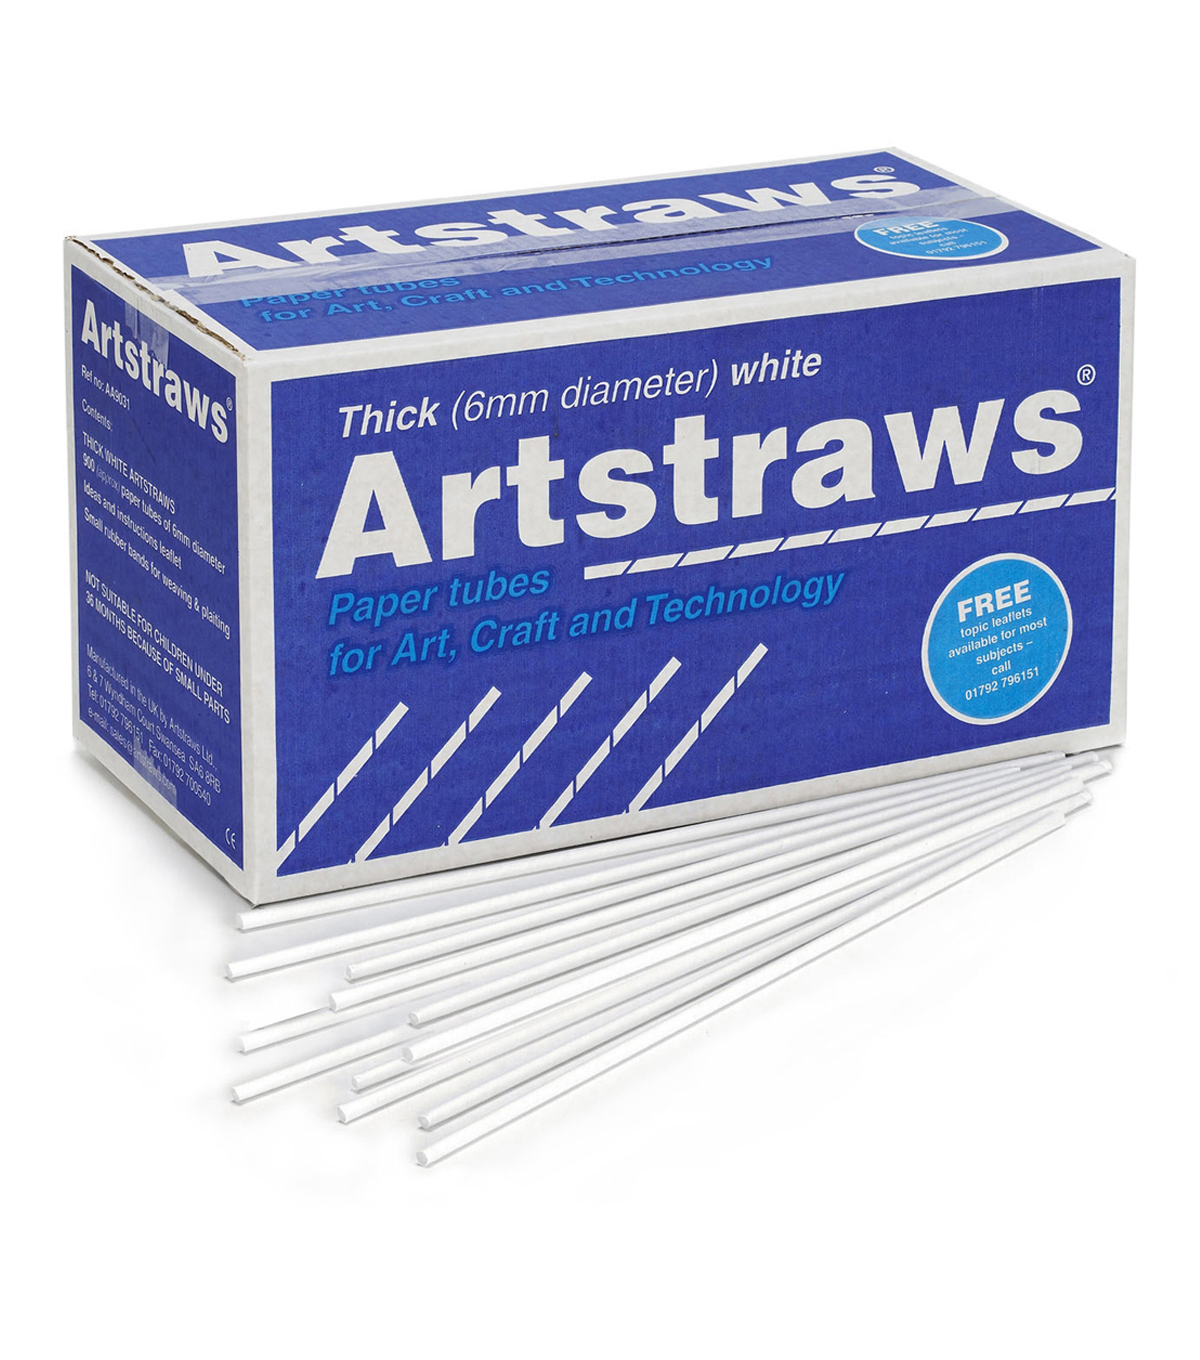 Artstraws Paper Tubes, Thick, White, 6 mm, 900 Pieces